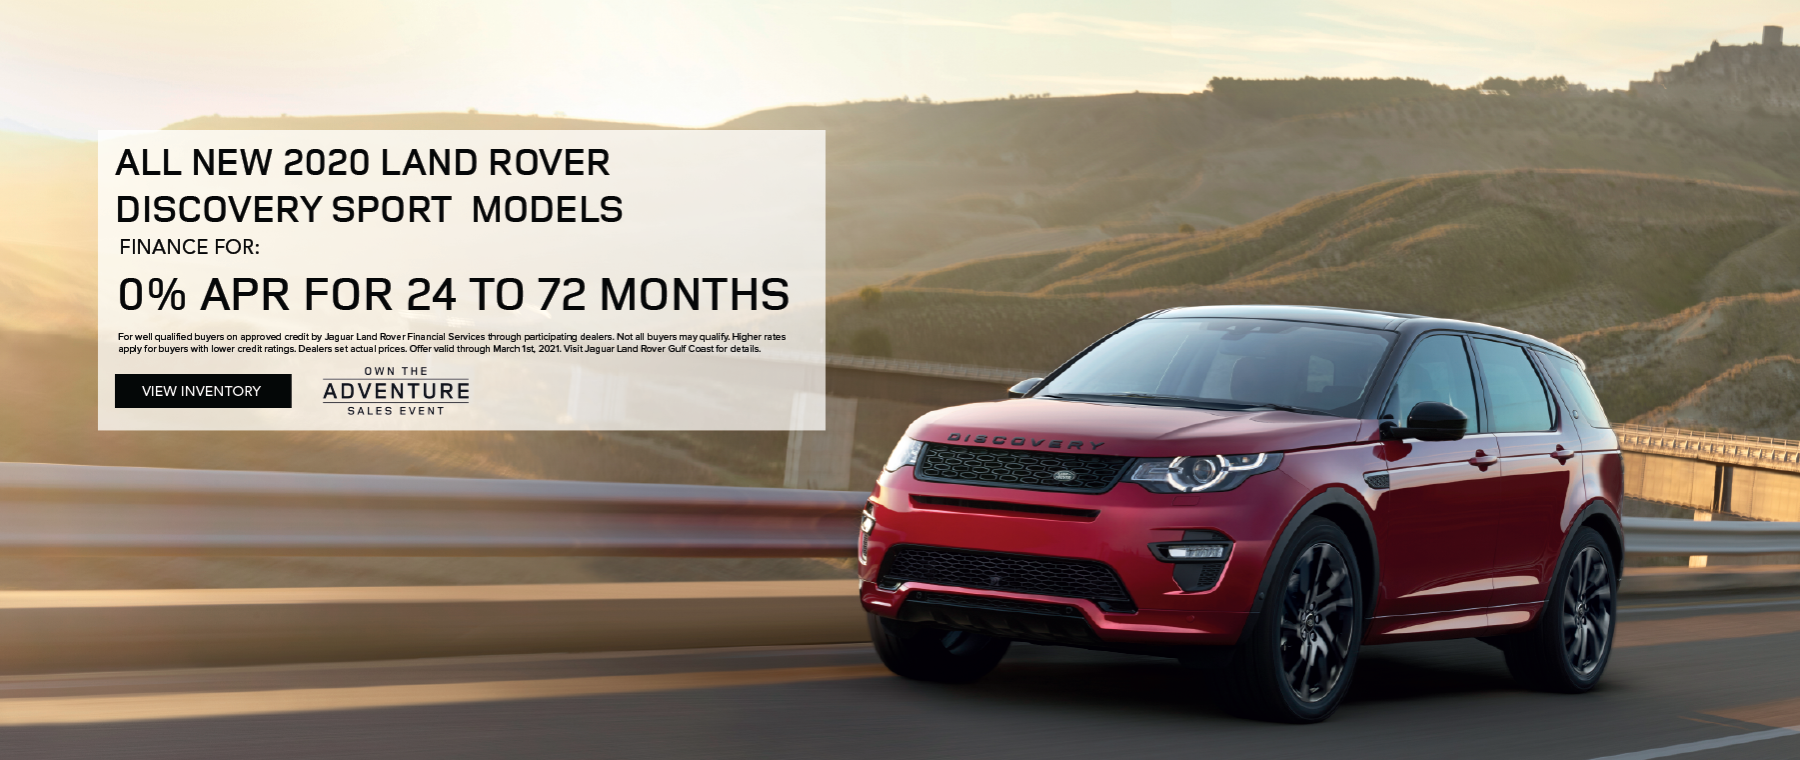 RED 2020 DISCOVERY SPORT ON ROAD WITH SUNSET IN DISTANCE.ALL 2020 LAND ROVER DISCOVERY SPORT MODELS. FINANCE AT 0% APR FOR 24 TO 72 MONTHS. EXCLUDES TAXES, TITLE, LICENSE AND FEES. OFFER ENDS 3/31/2021. CLICK TO VIEW INVENTORY.